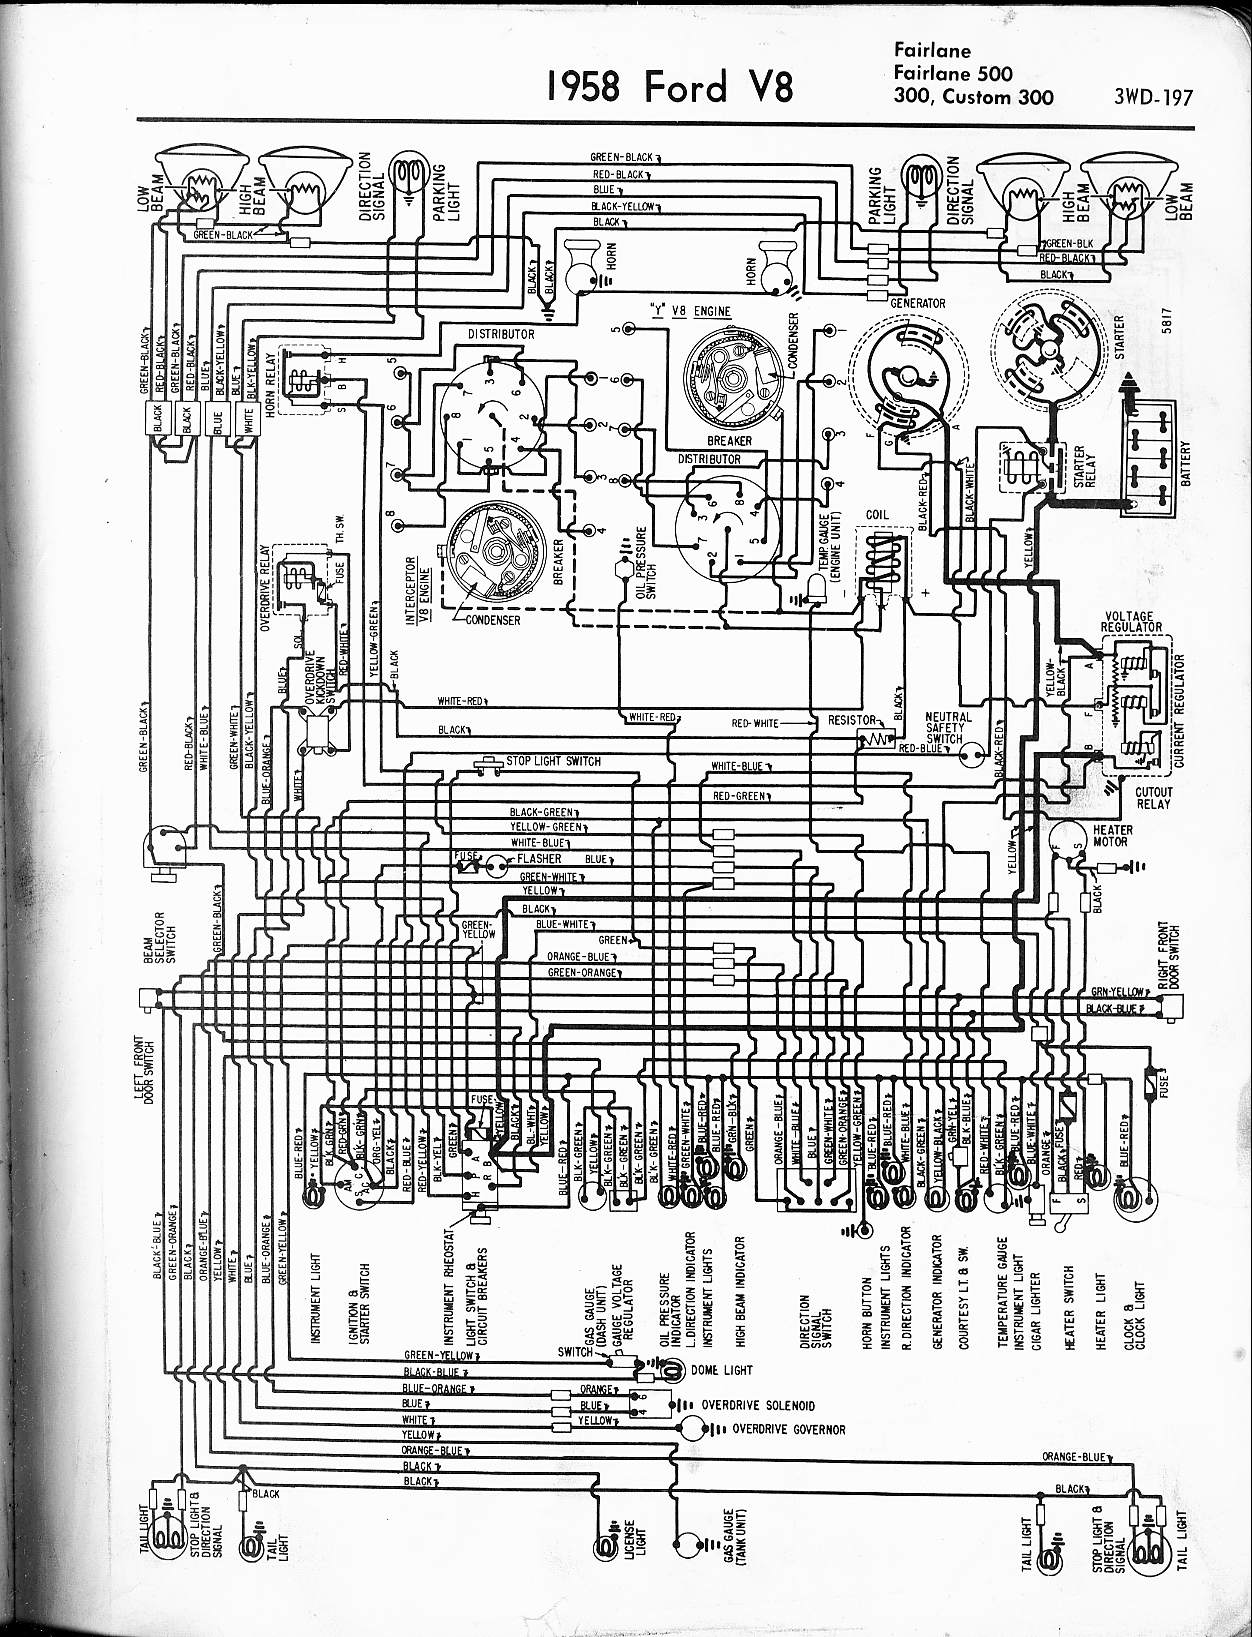 1958 ranchero wiring diagram wiring diagram57 65 ford wiring diagrams1958 v8 fairlane, 500, 300, custom 300